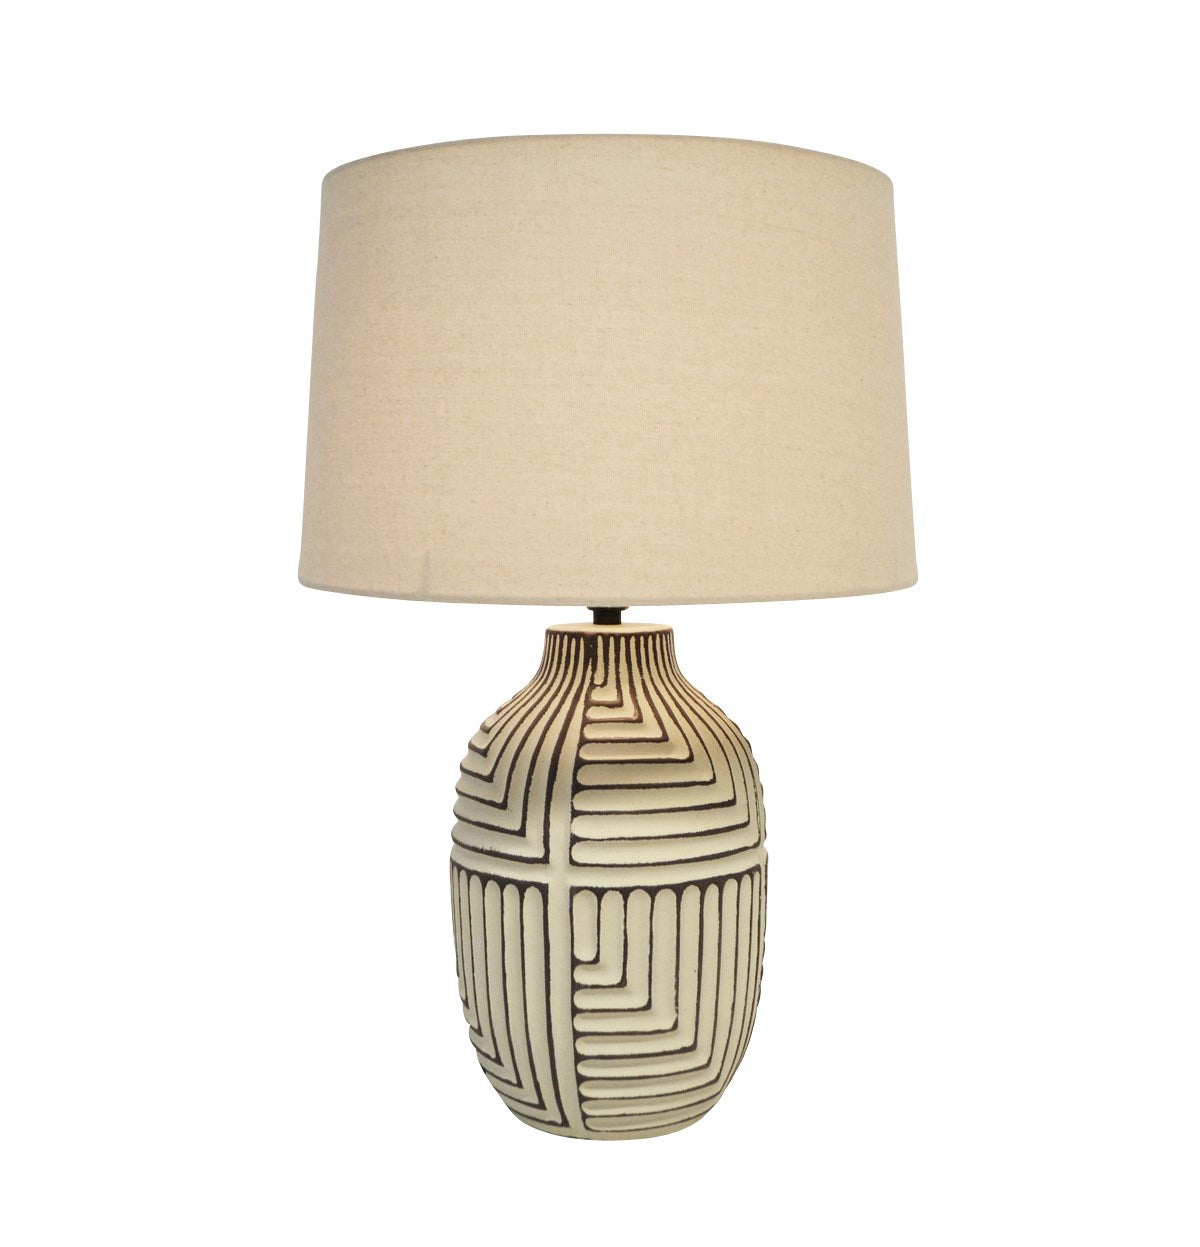 TABLE LAMP DAMARA